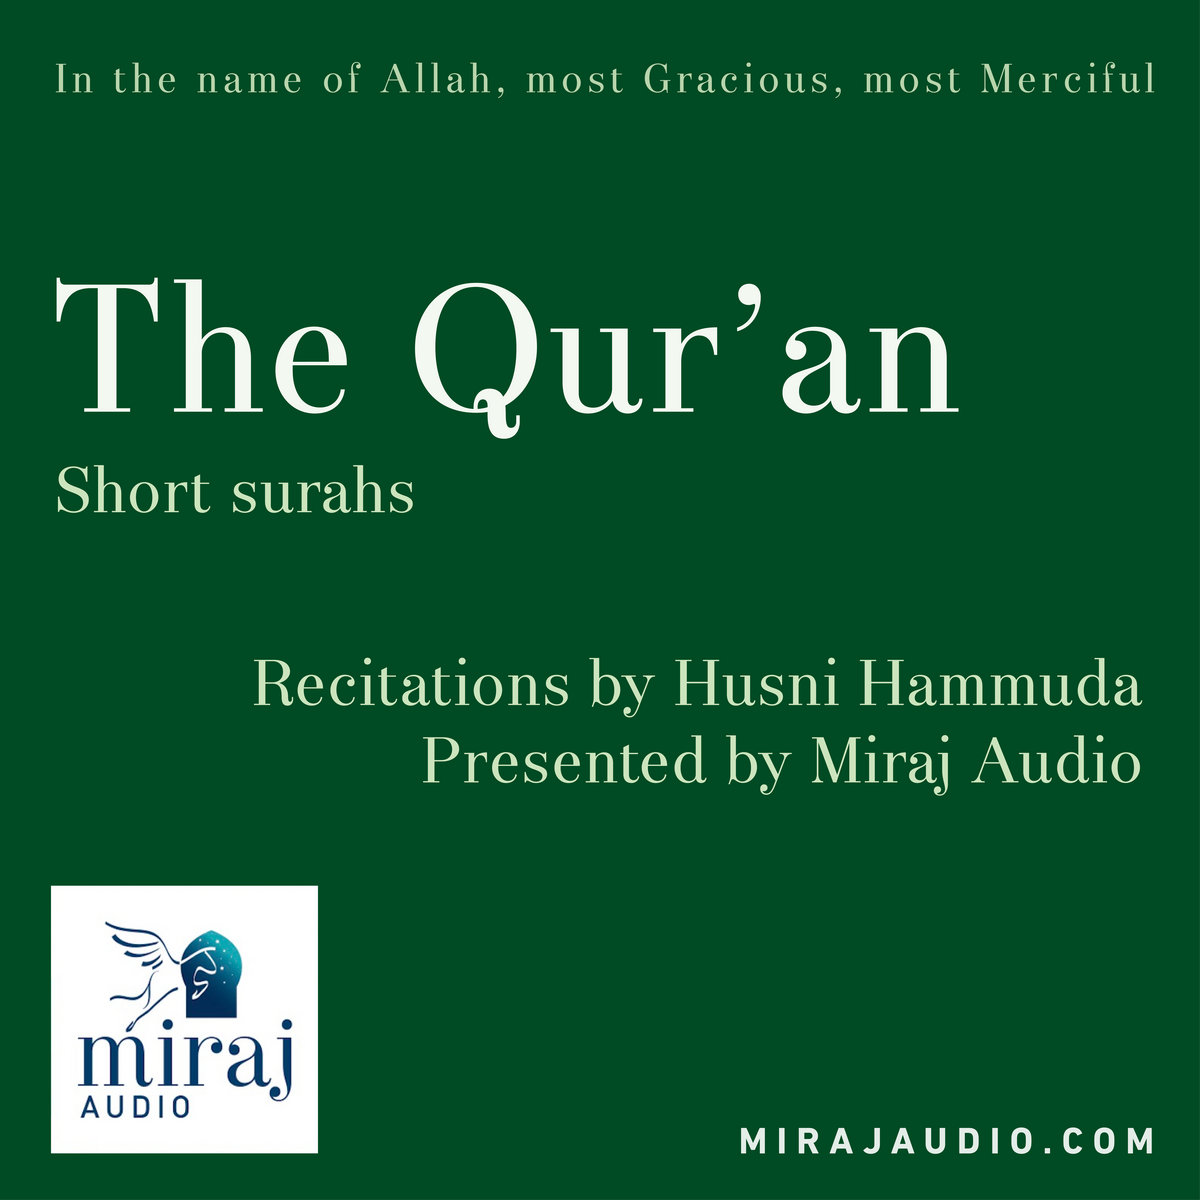 The Qur'an - short surahs FREE | Miraj Audio